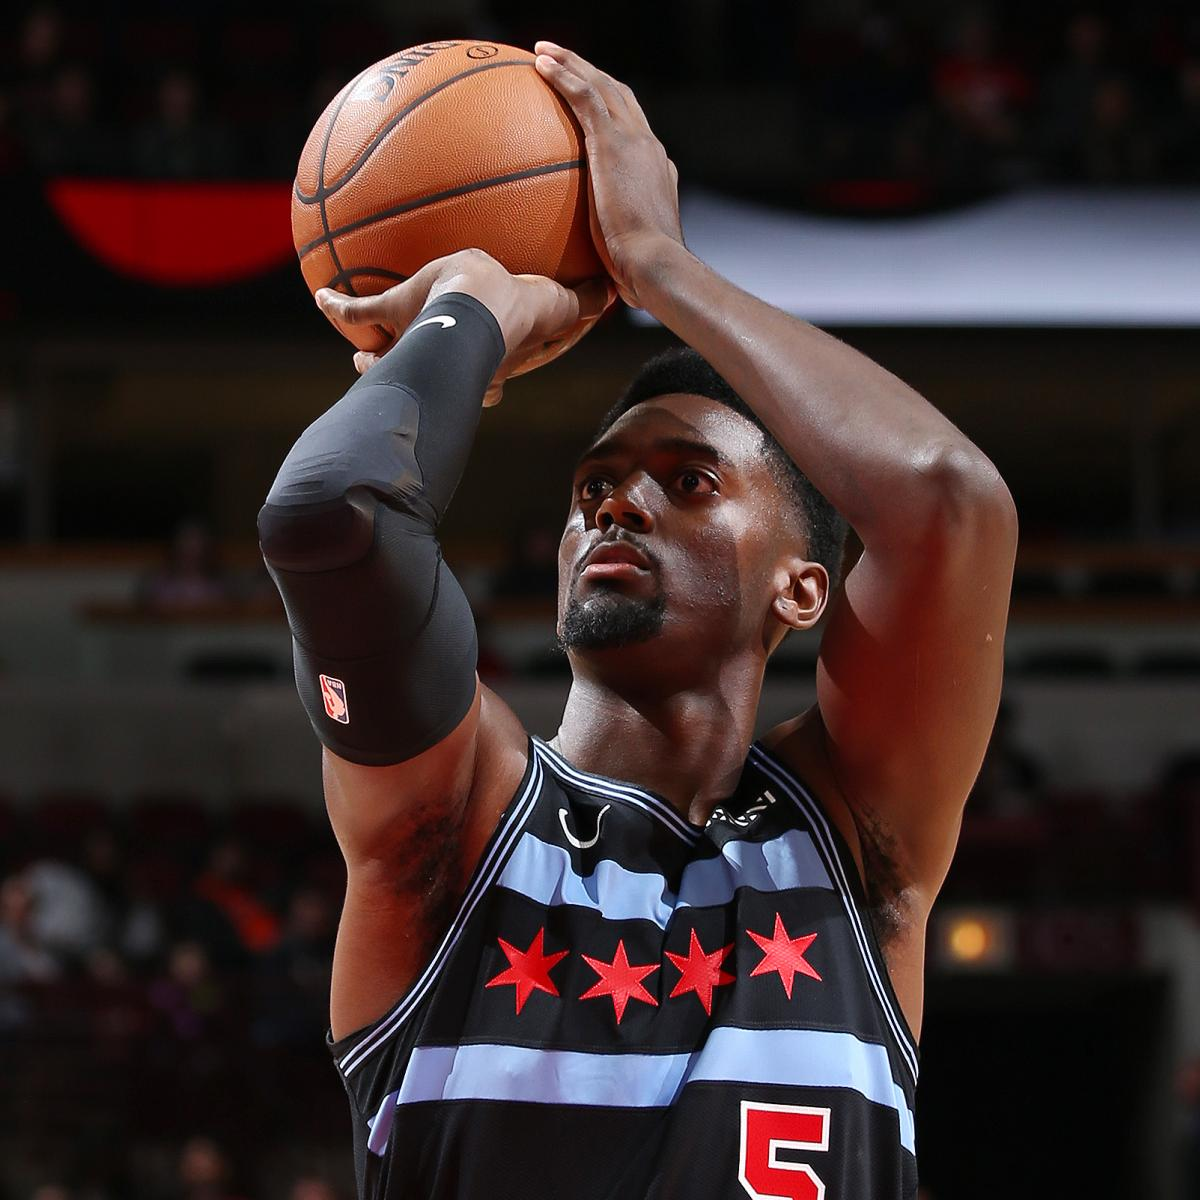 Warriors Come Out To Play Bleacher Report: Bobby Portis: 'Obvious' Kevin Durant Intended To Injure